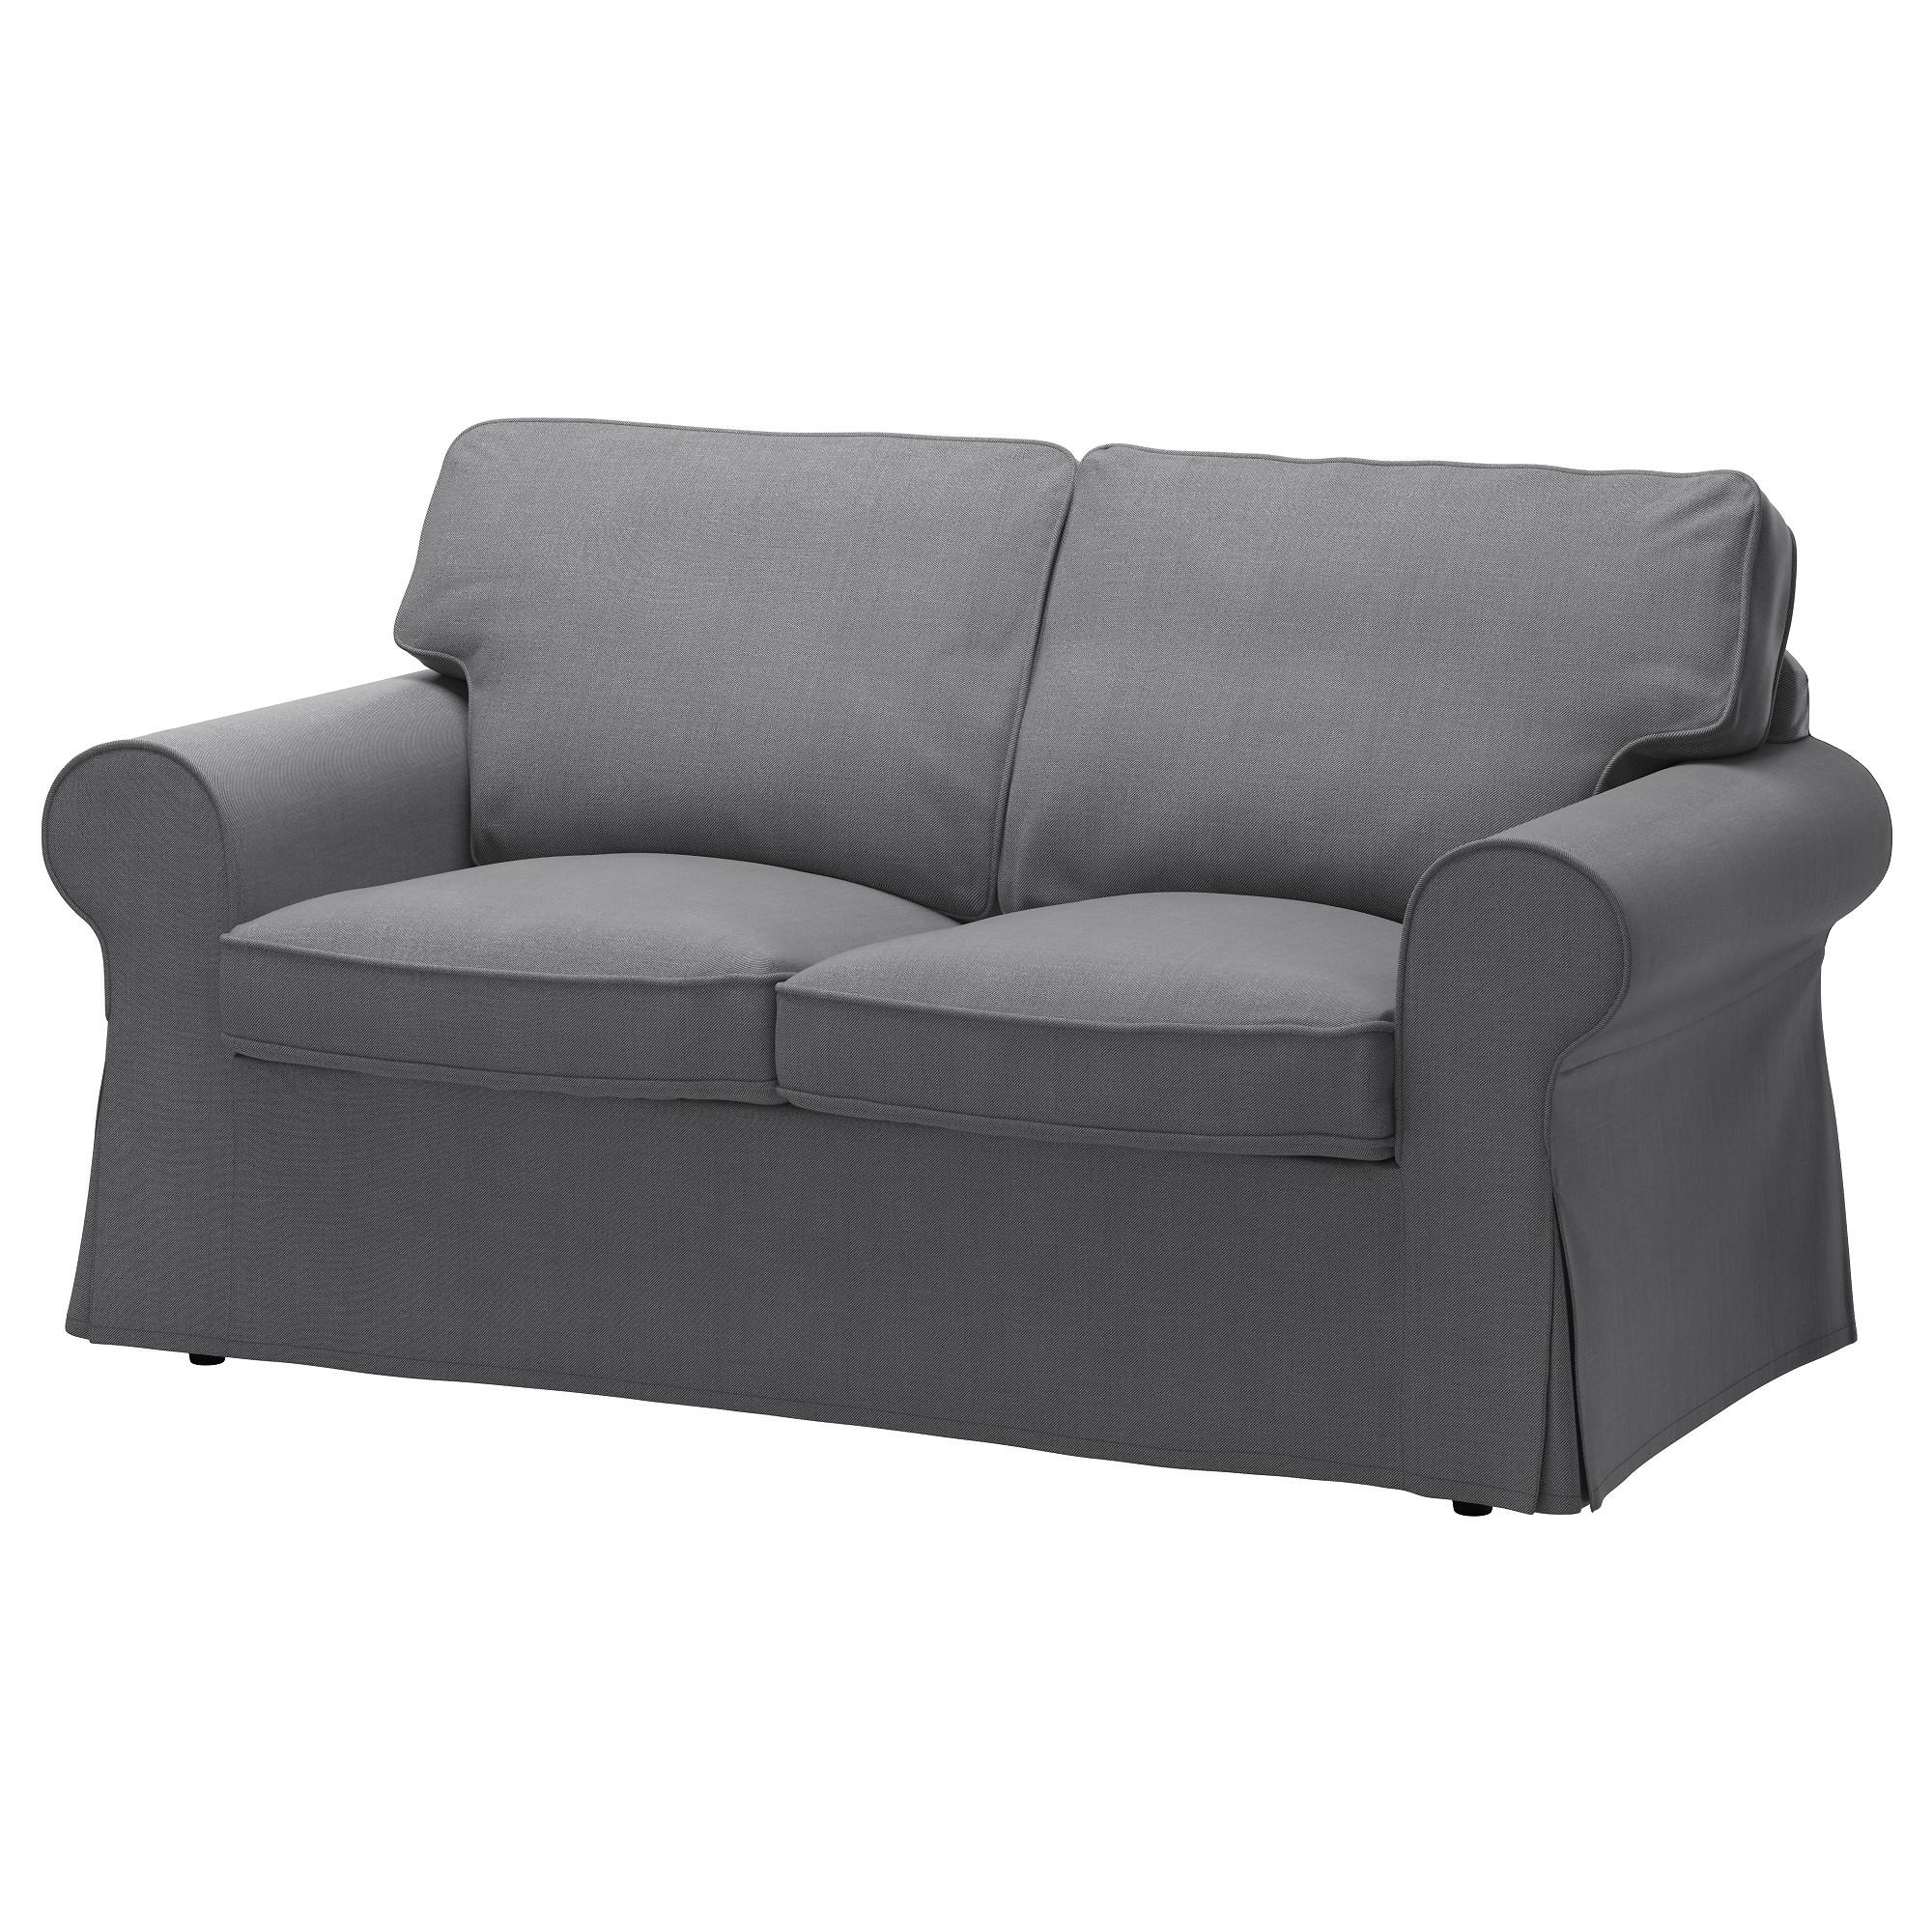 Ektorp – Ikea Regarding Sofas With Removable Covers (Image 6 of 20)